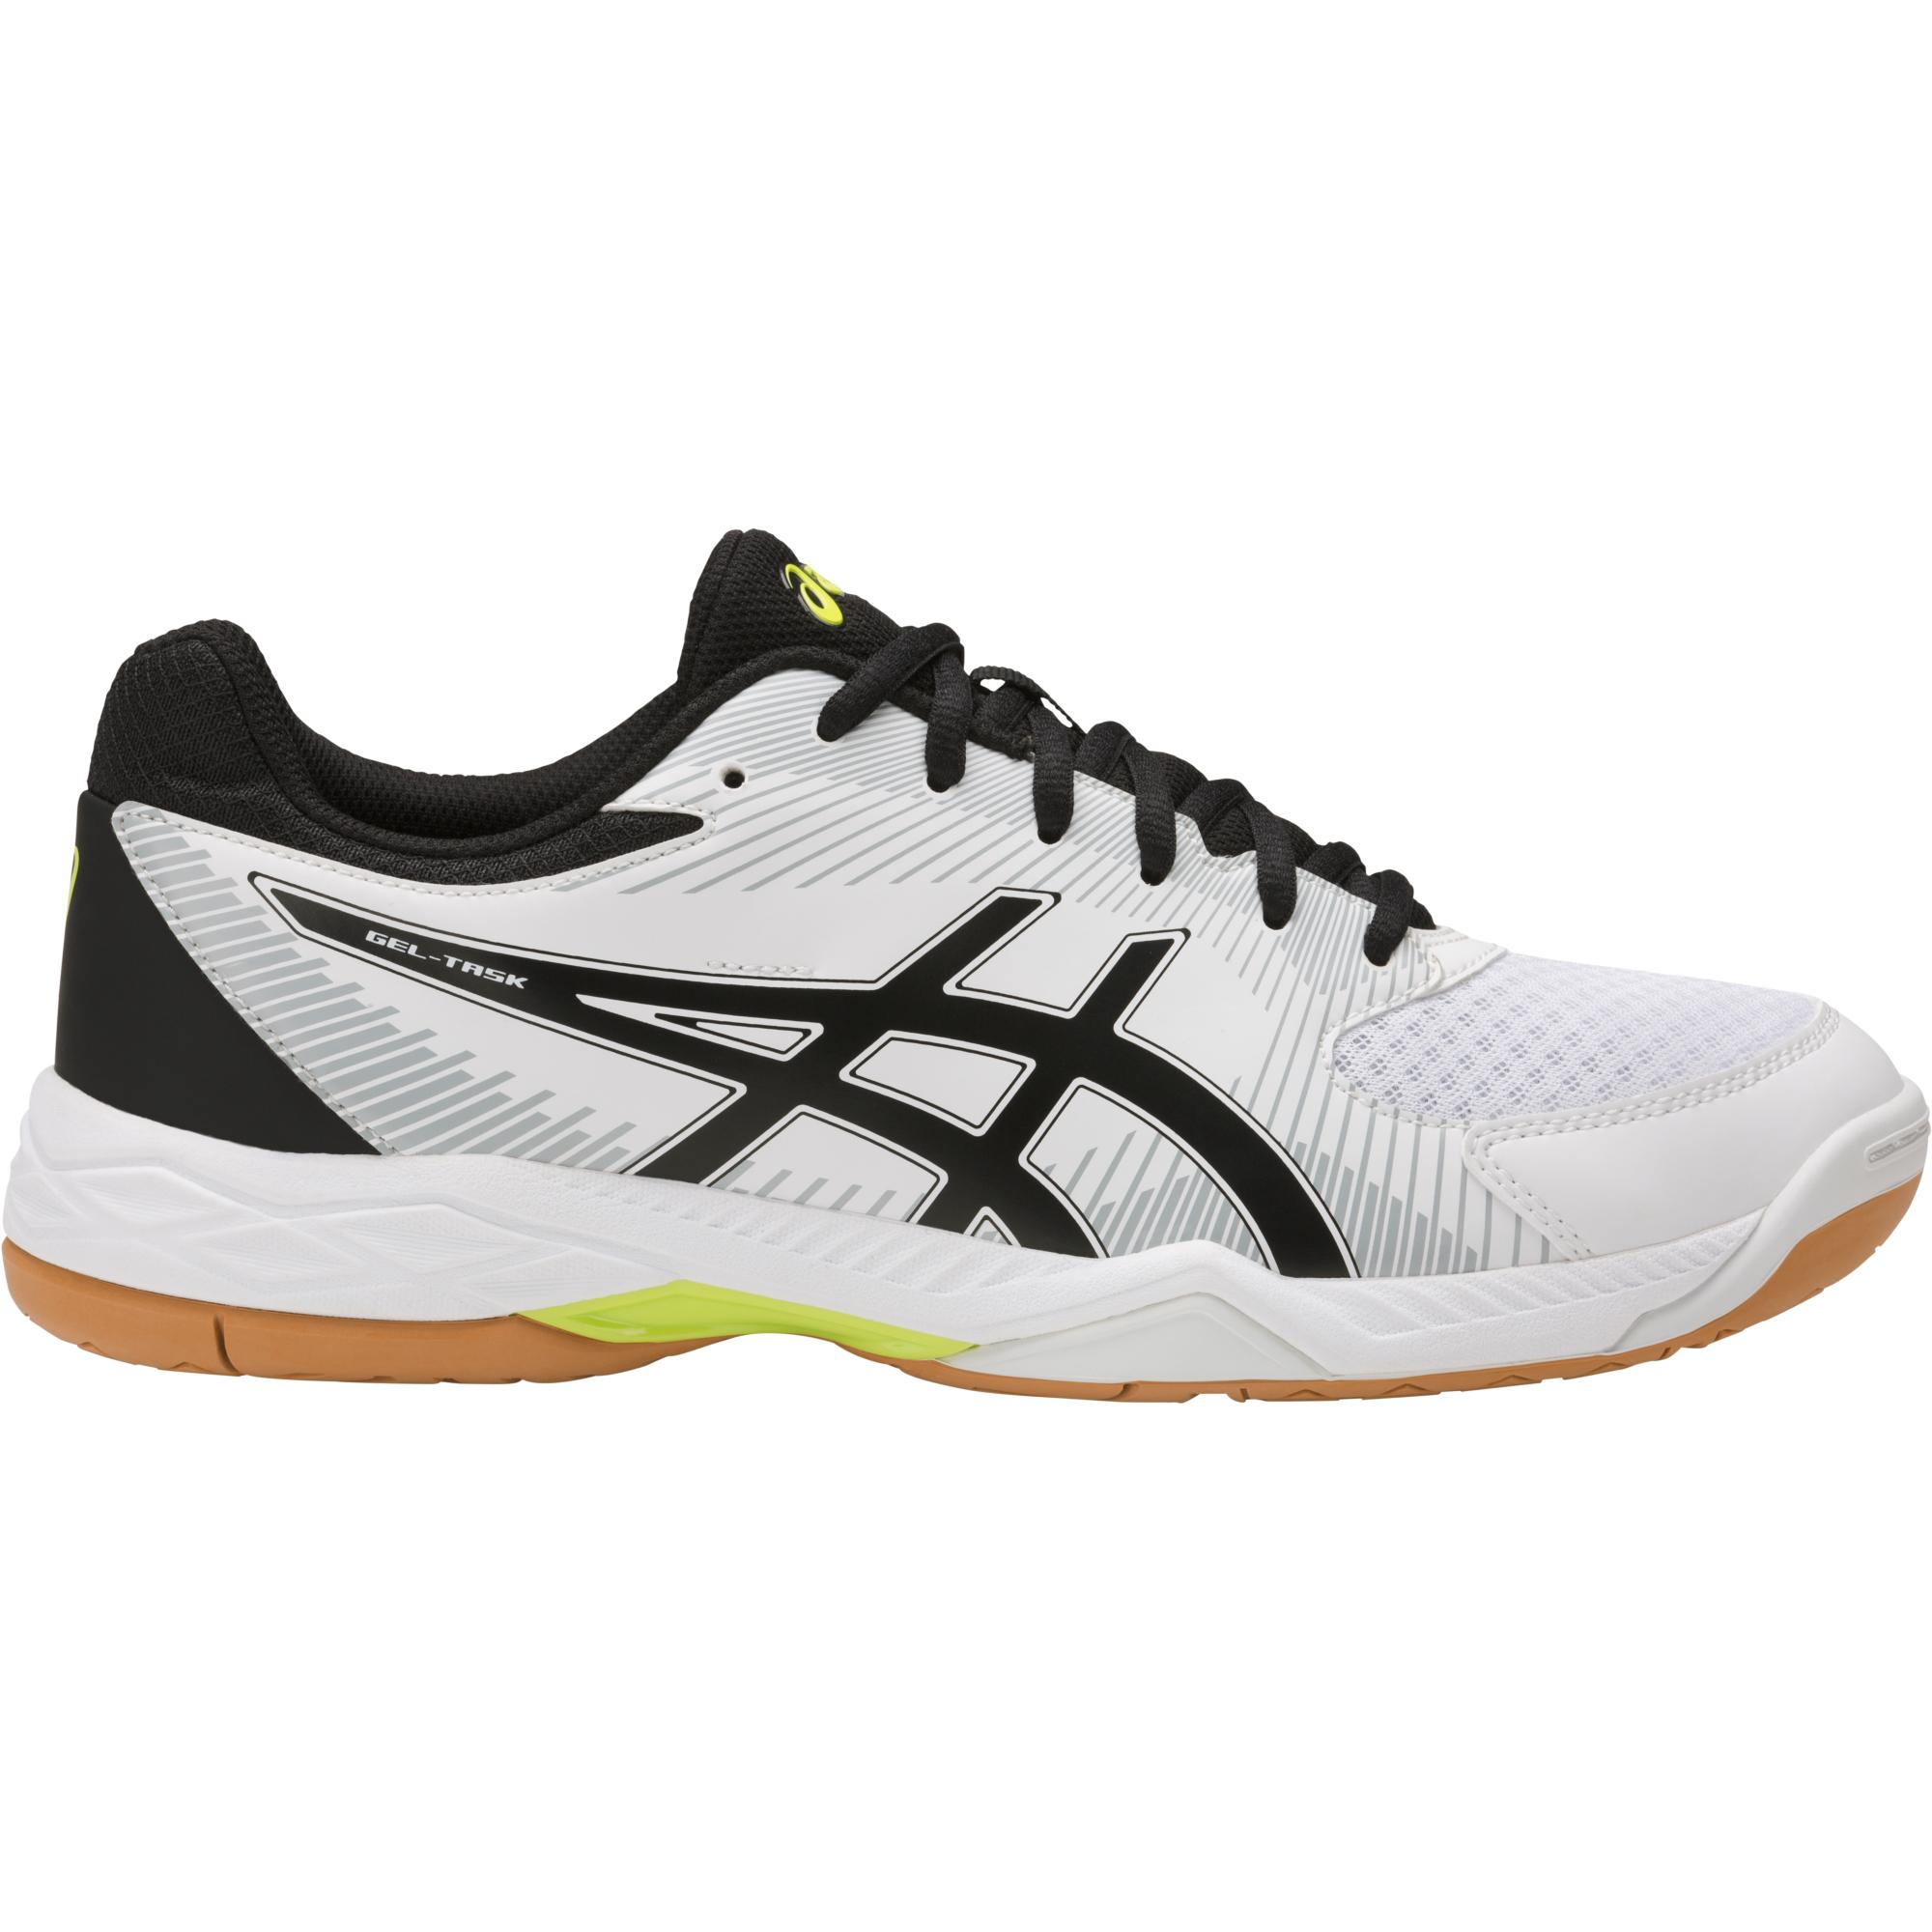 Asics Mens GELTask 2 Indoor Court Shoes  White/Black